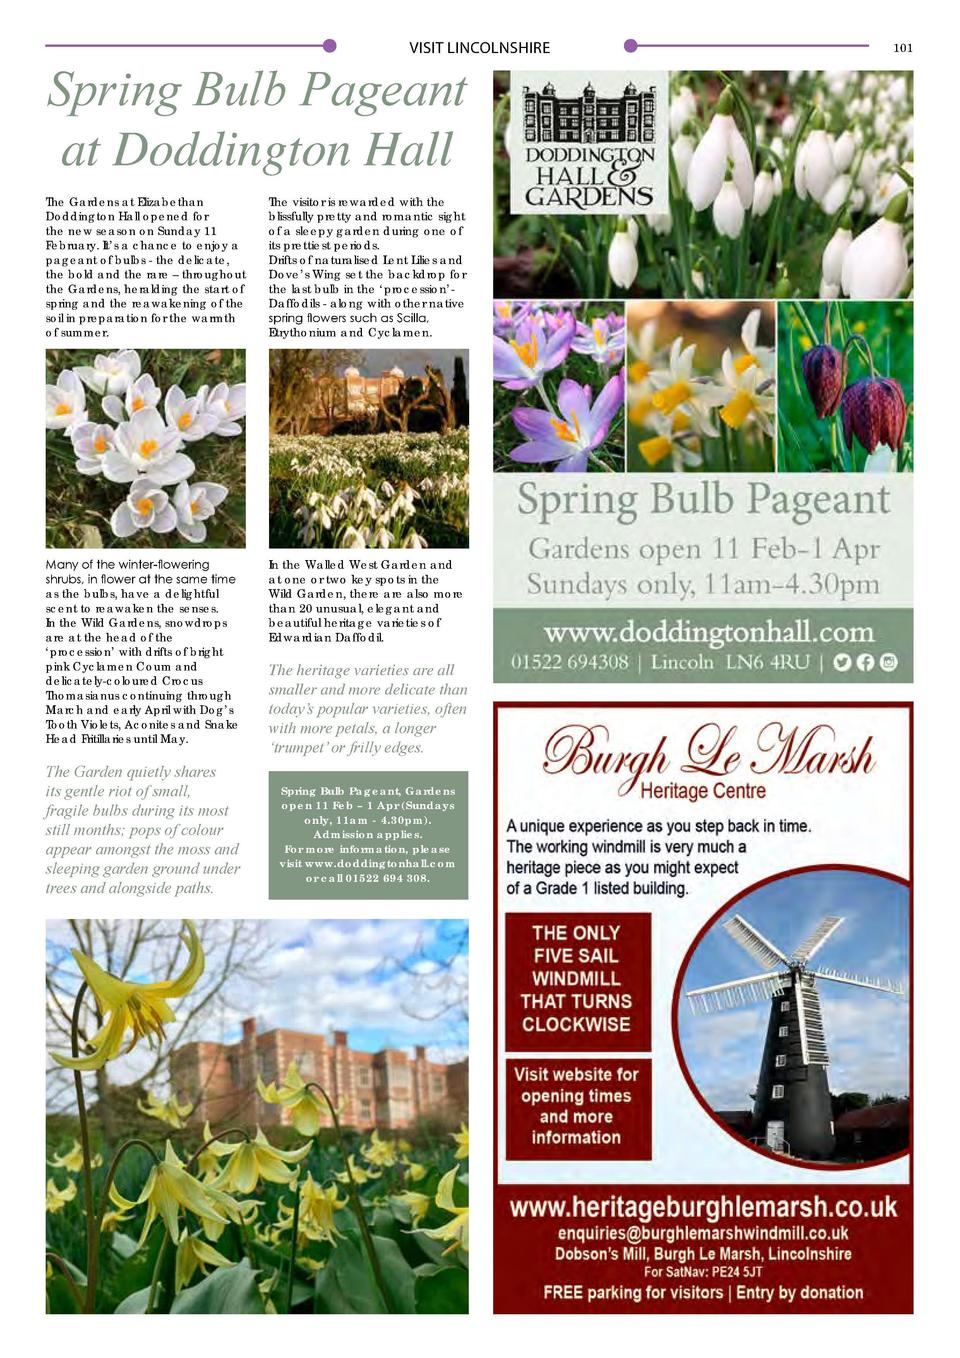 VISIT LINCOLNSHIRE  Spring Bulb Pageant at Doddington Hall The Gardens at Elizabethan Doddington Hall opened for the new s...